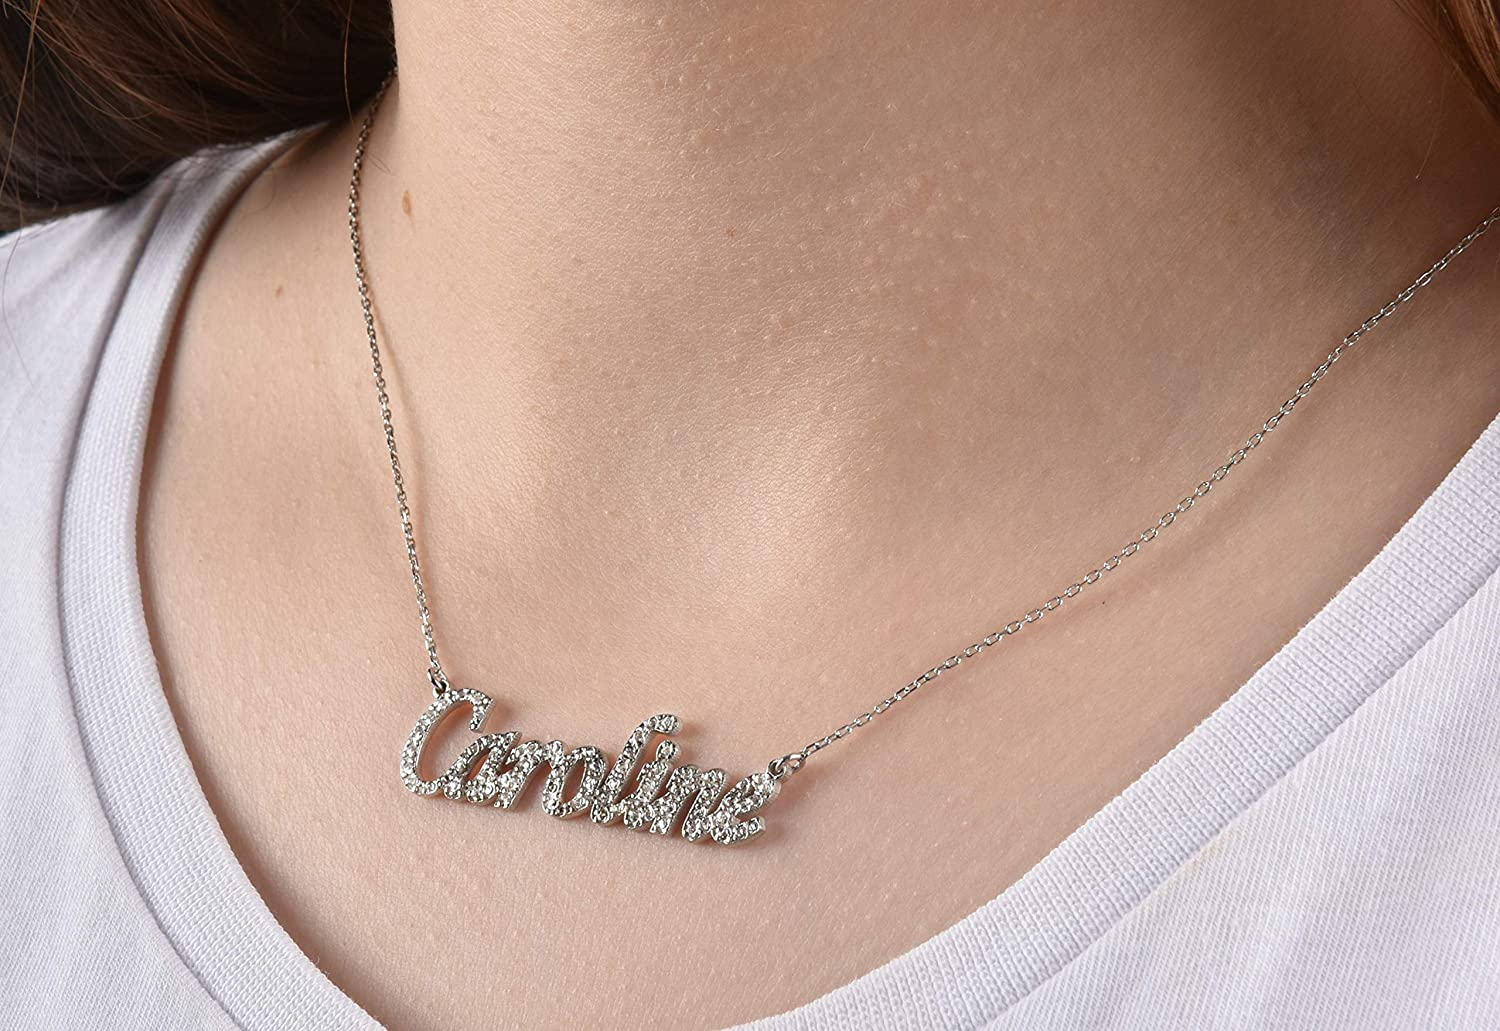 Silver Name Necklace Cubic Max 45% OFF Plate Neckla Free Shipping Cheap Bargain Gift Zirconia Gold